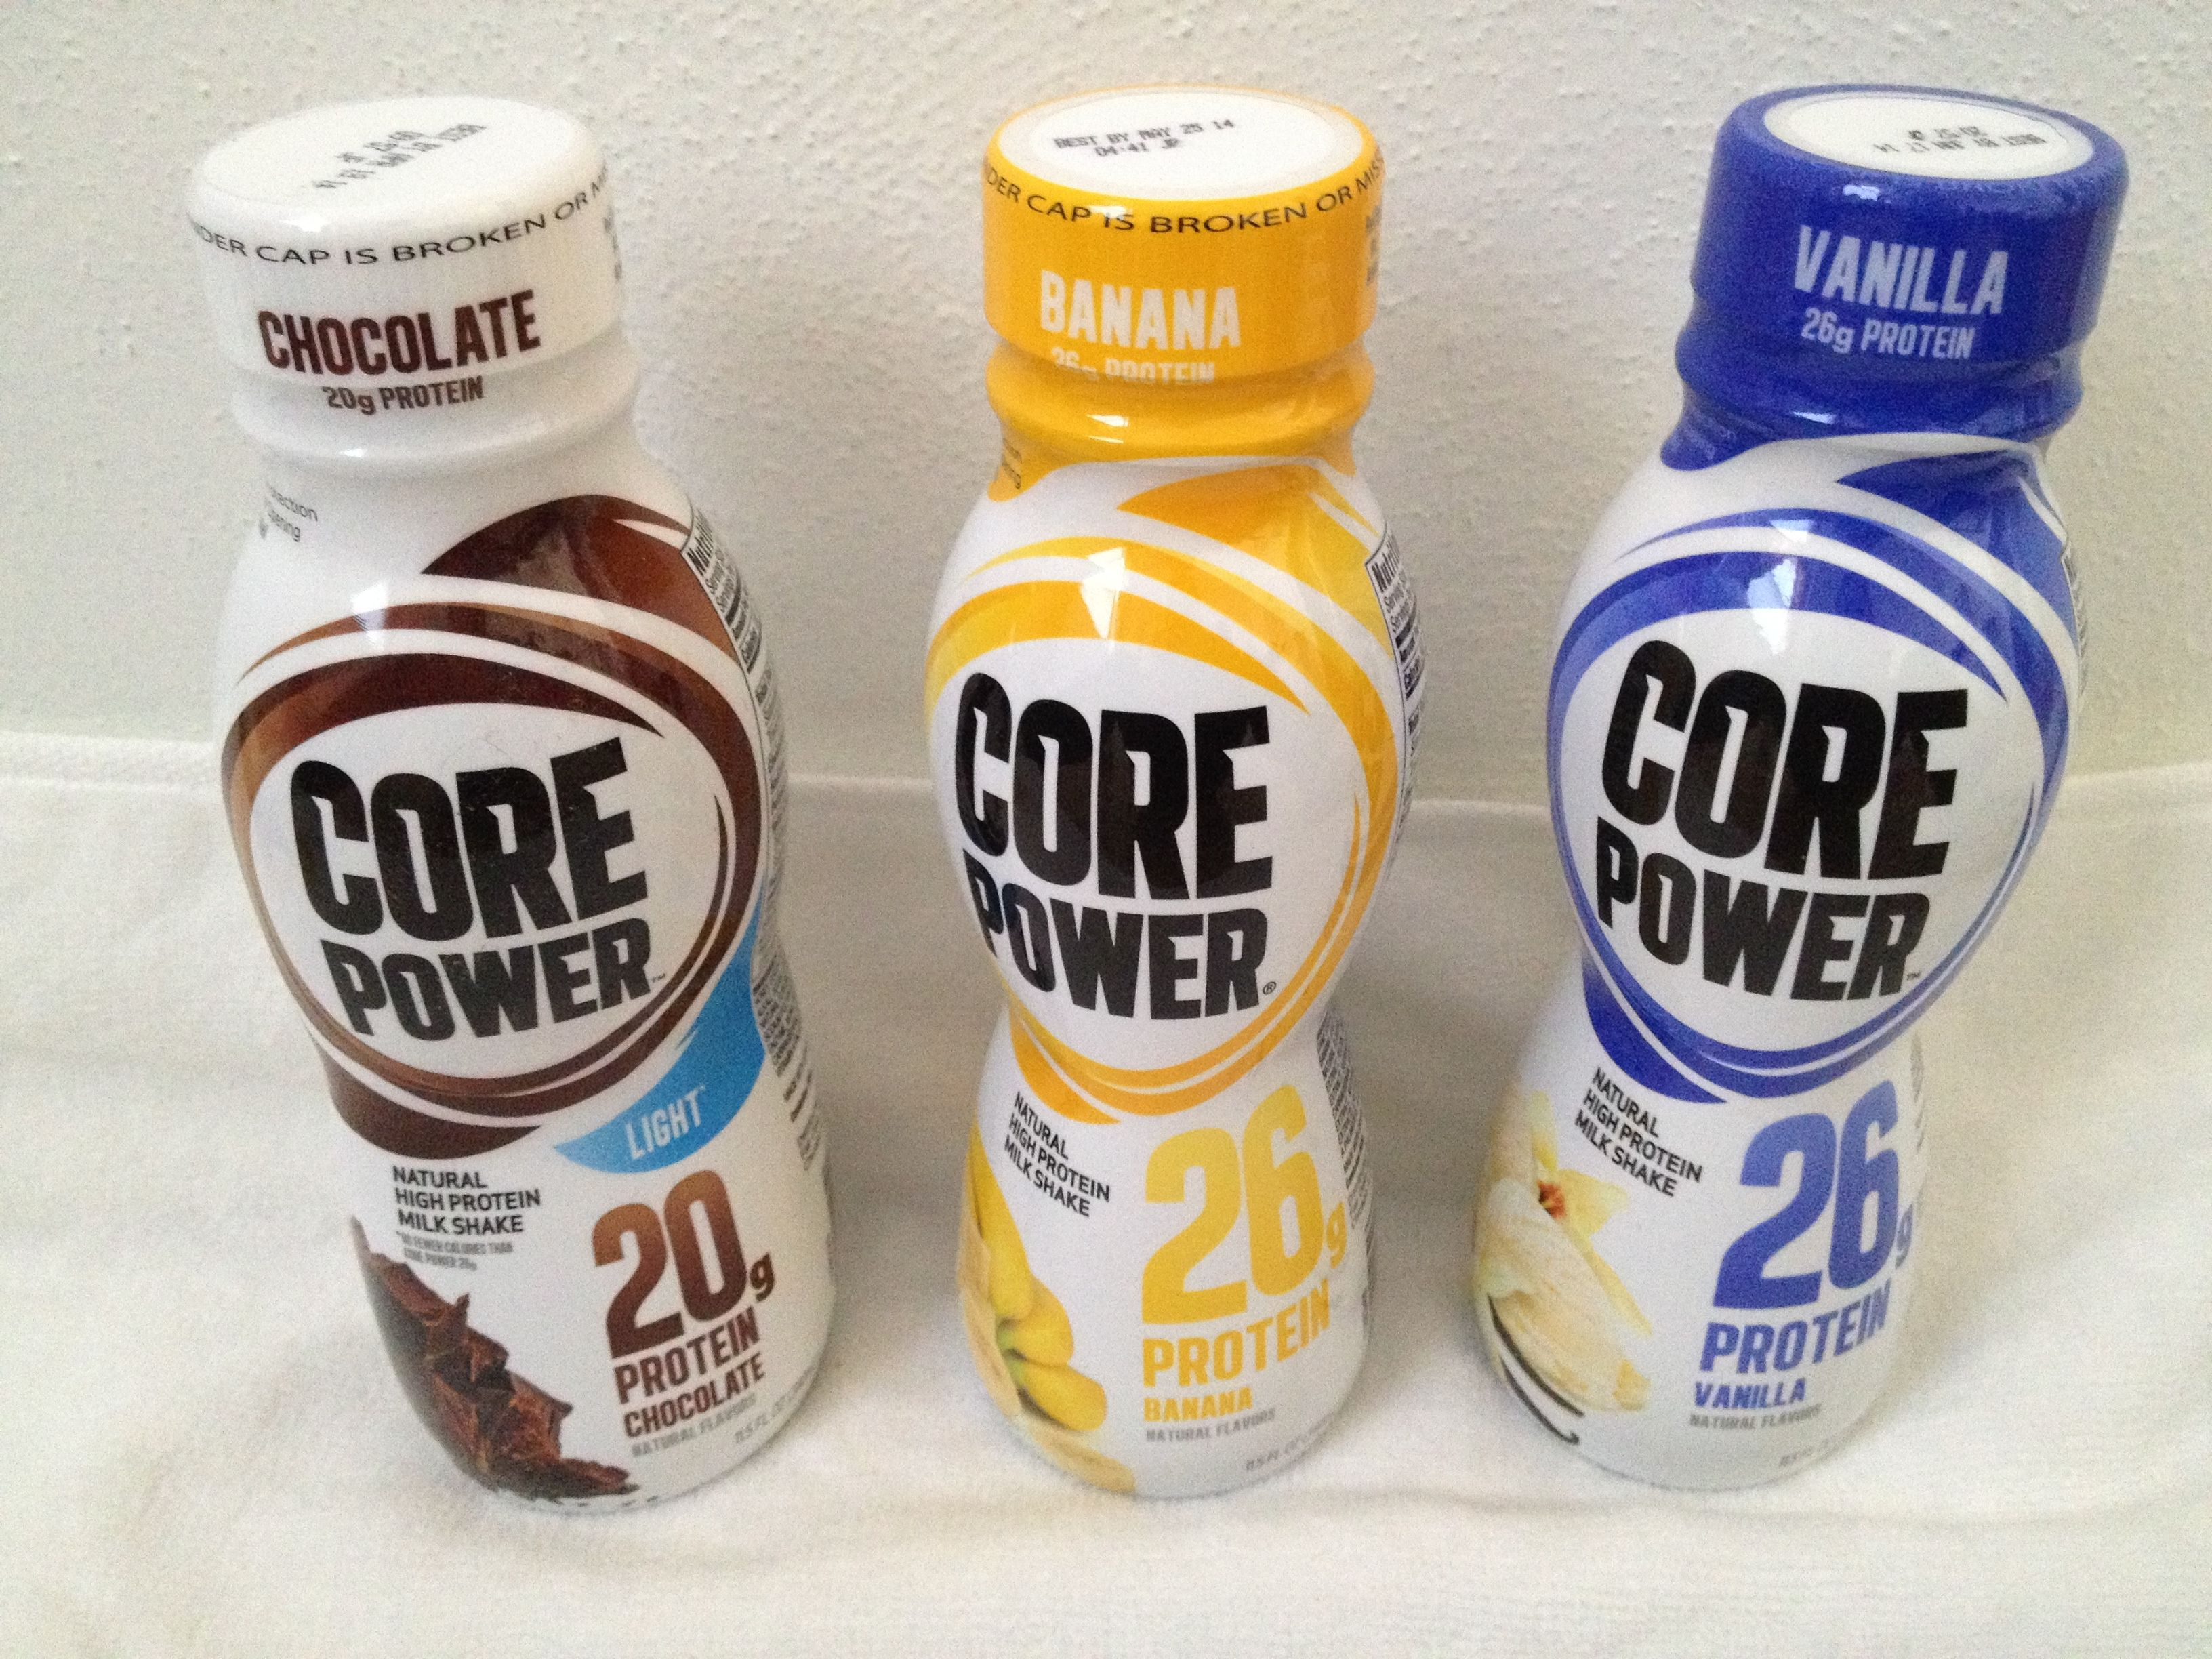 Core Power Fit Kit Itz Linz Protein Drinks Core Power Protein Shake Protien Drinks